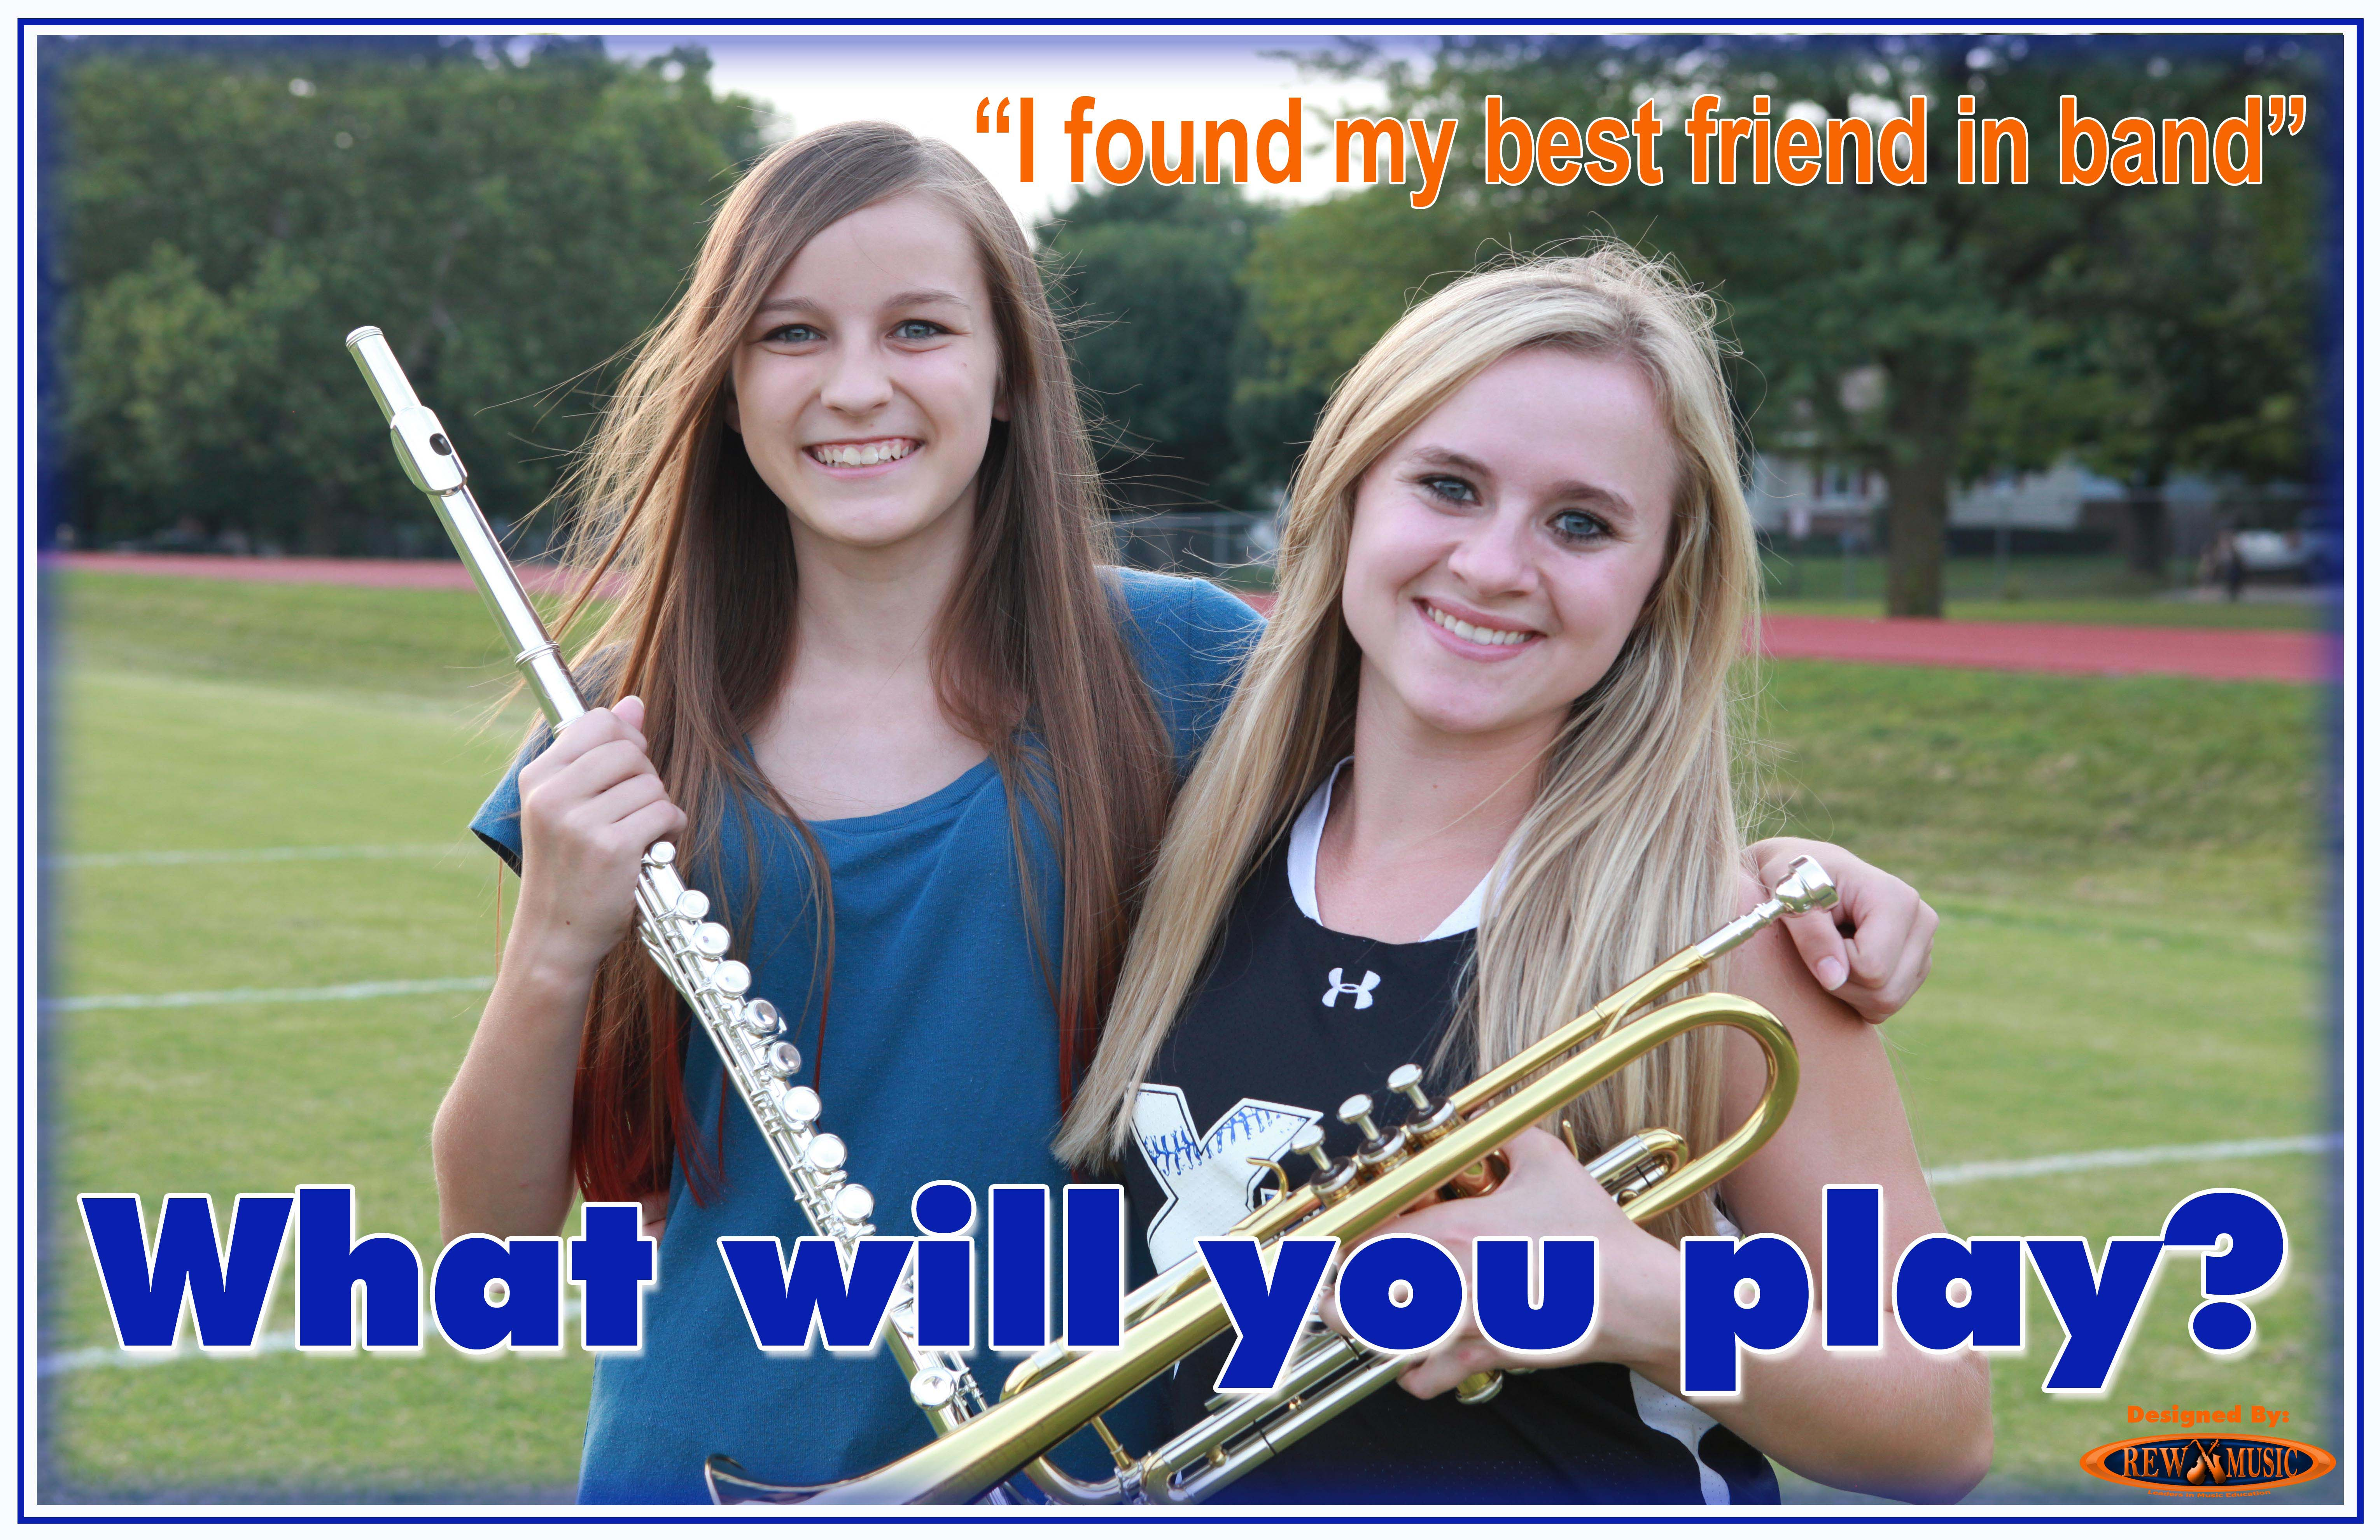 Join the School Band Girls What Will You Play?